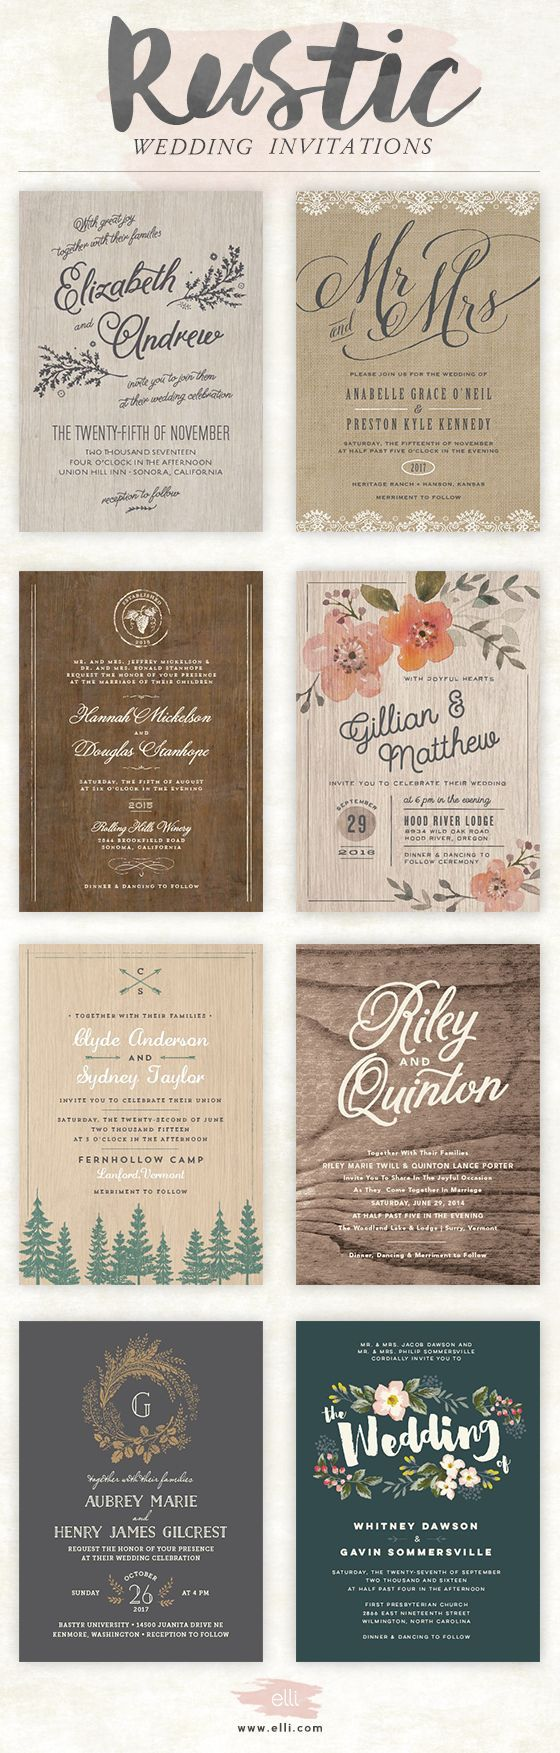 make your own wedding invitations online free%0A Beautiful rustic wedding invitations  Editable instant download templates  you can print as many as you need   wedding  invitations  vinewedding    Pinterest